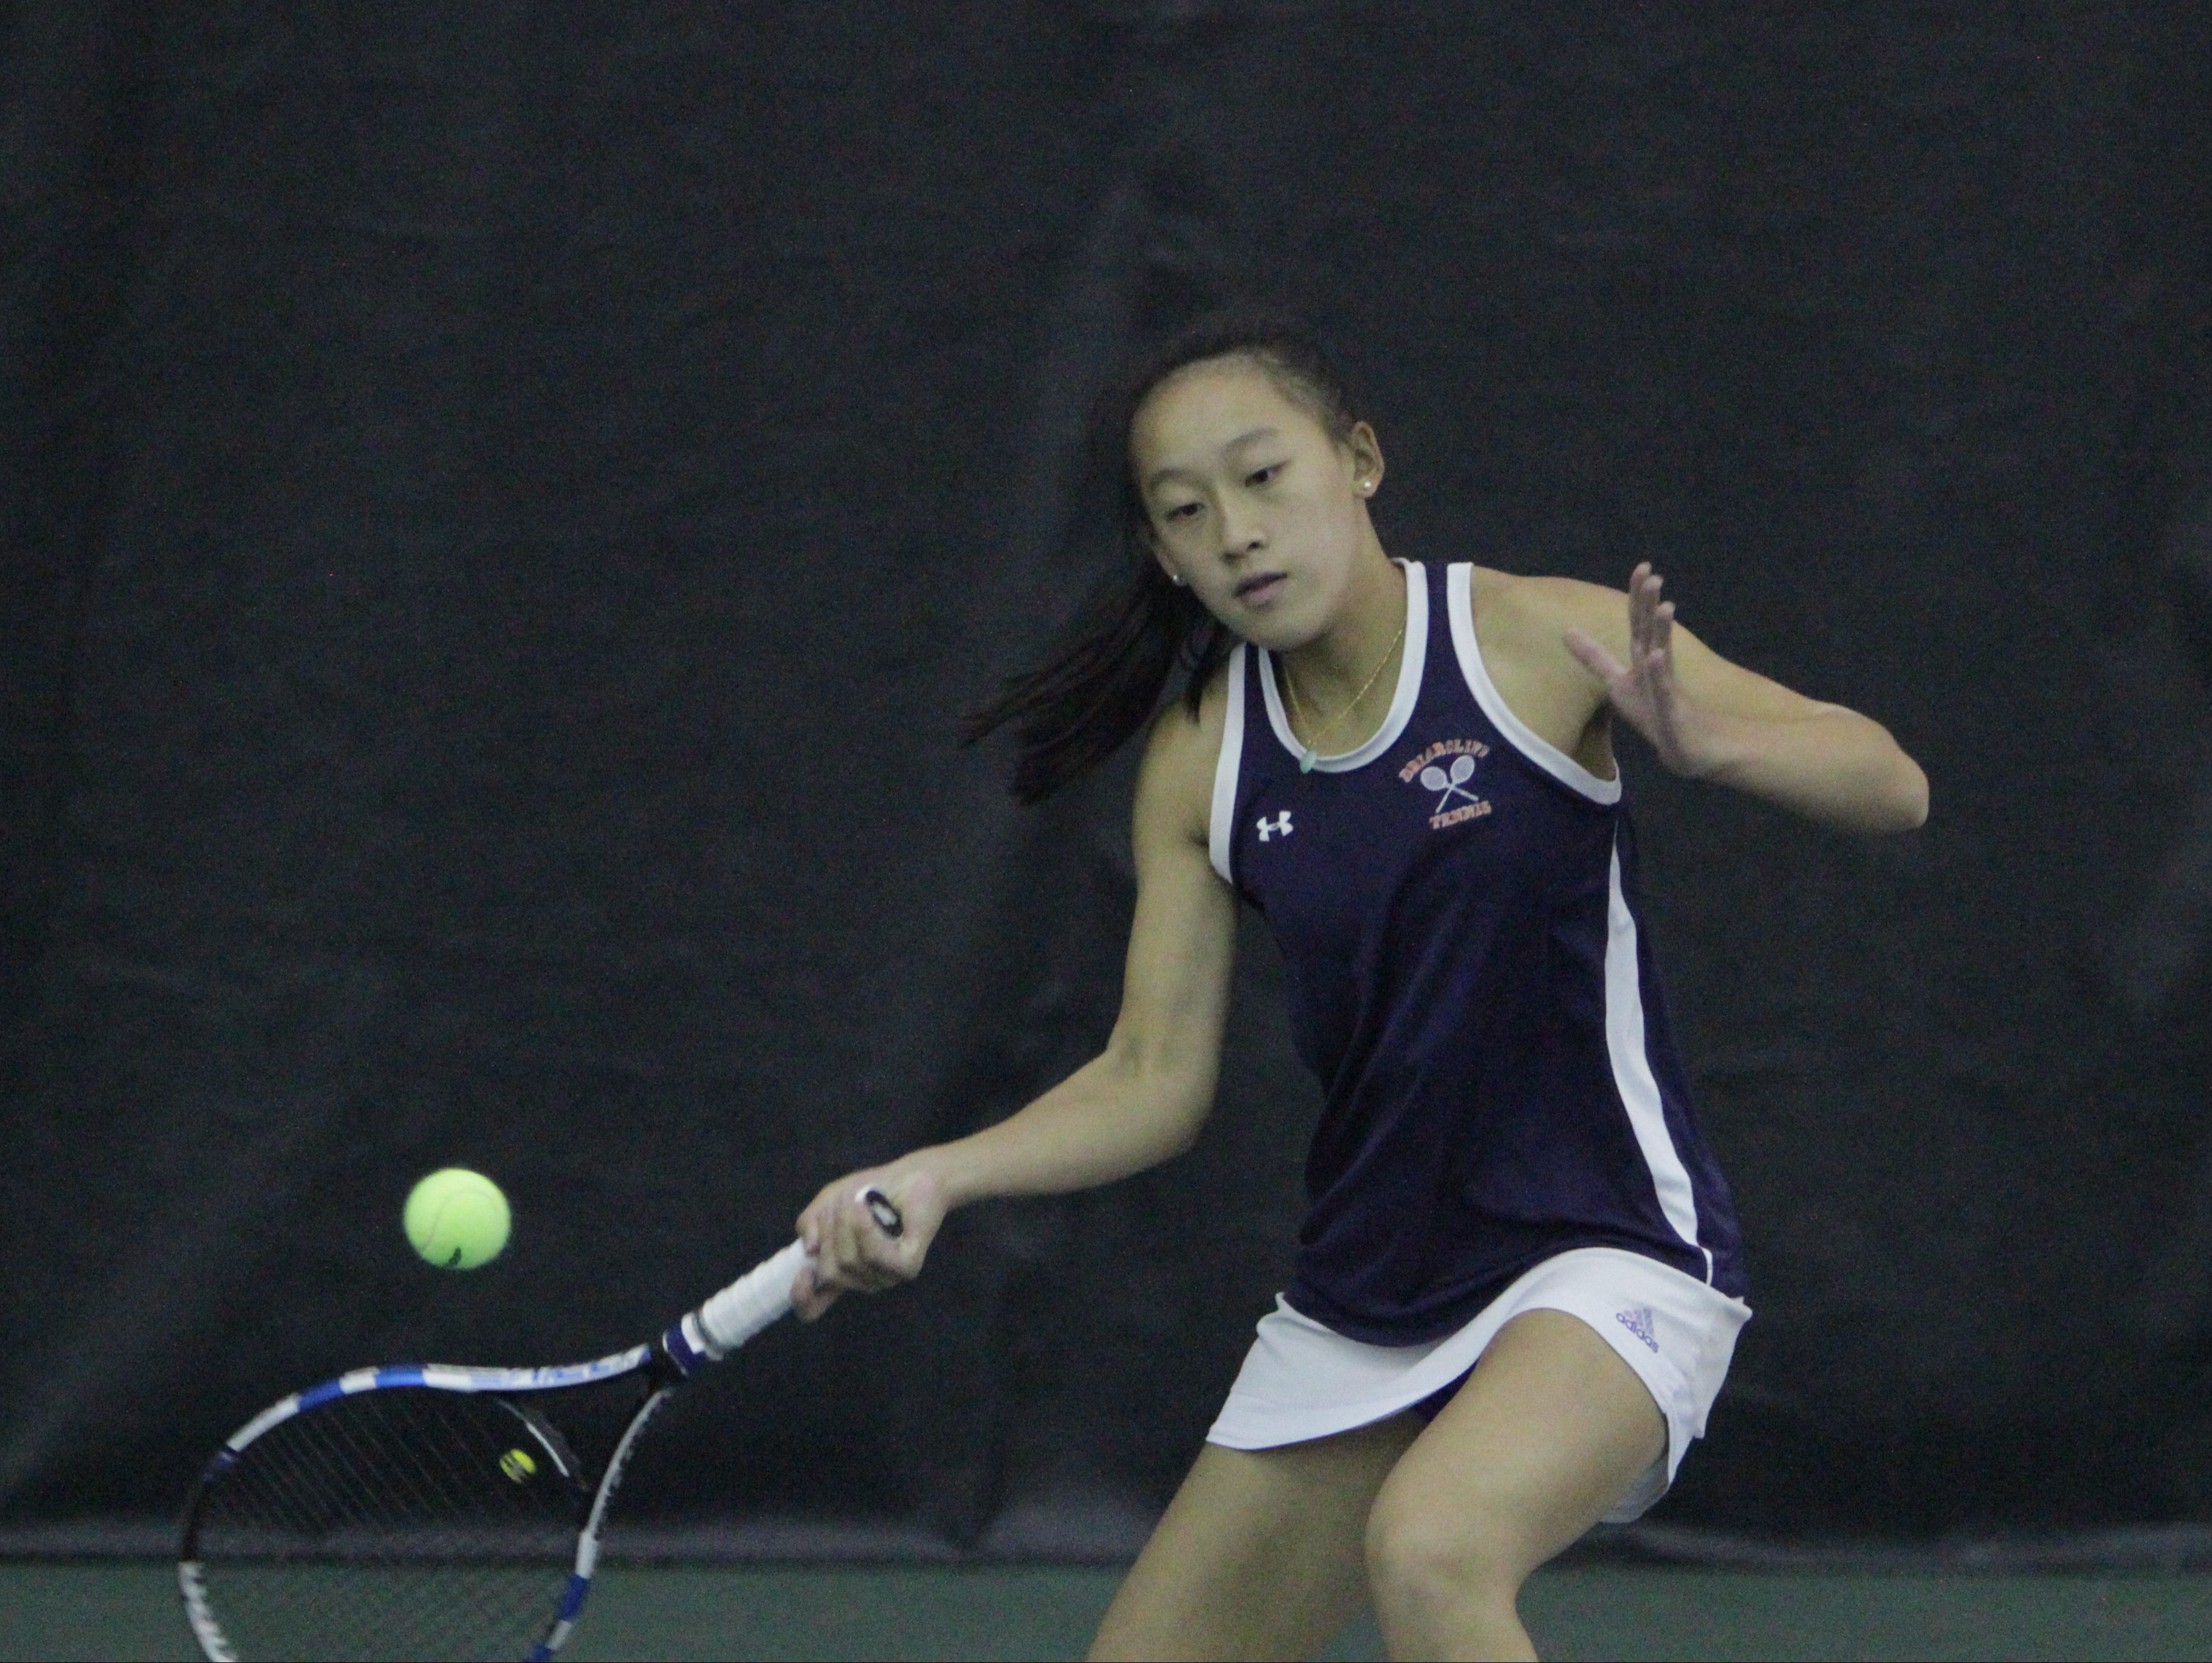 Briarcliff's Rebecca Lim hits a forehand shot during the 2016 Section 1 Tennis Tournament finals at Sound Shore Indoor Tennis in Port Chester on Sunday, Oct. 23rd, 2016.